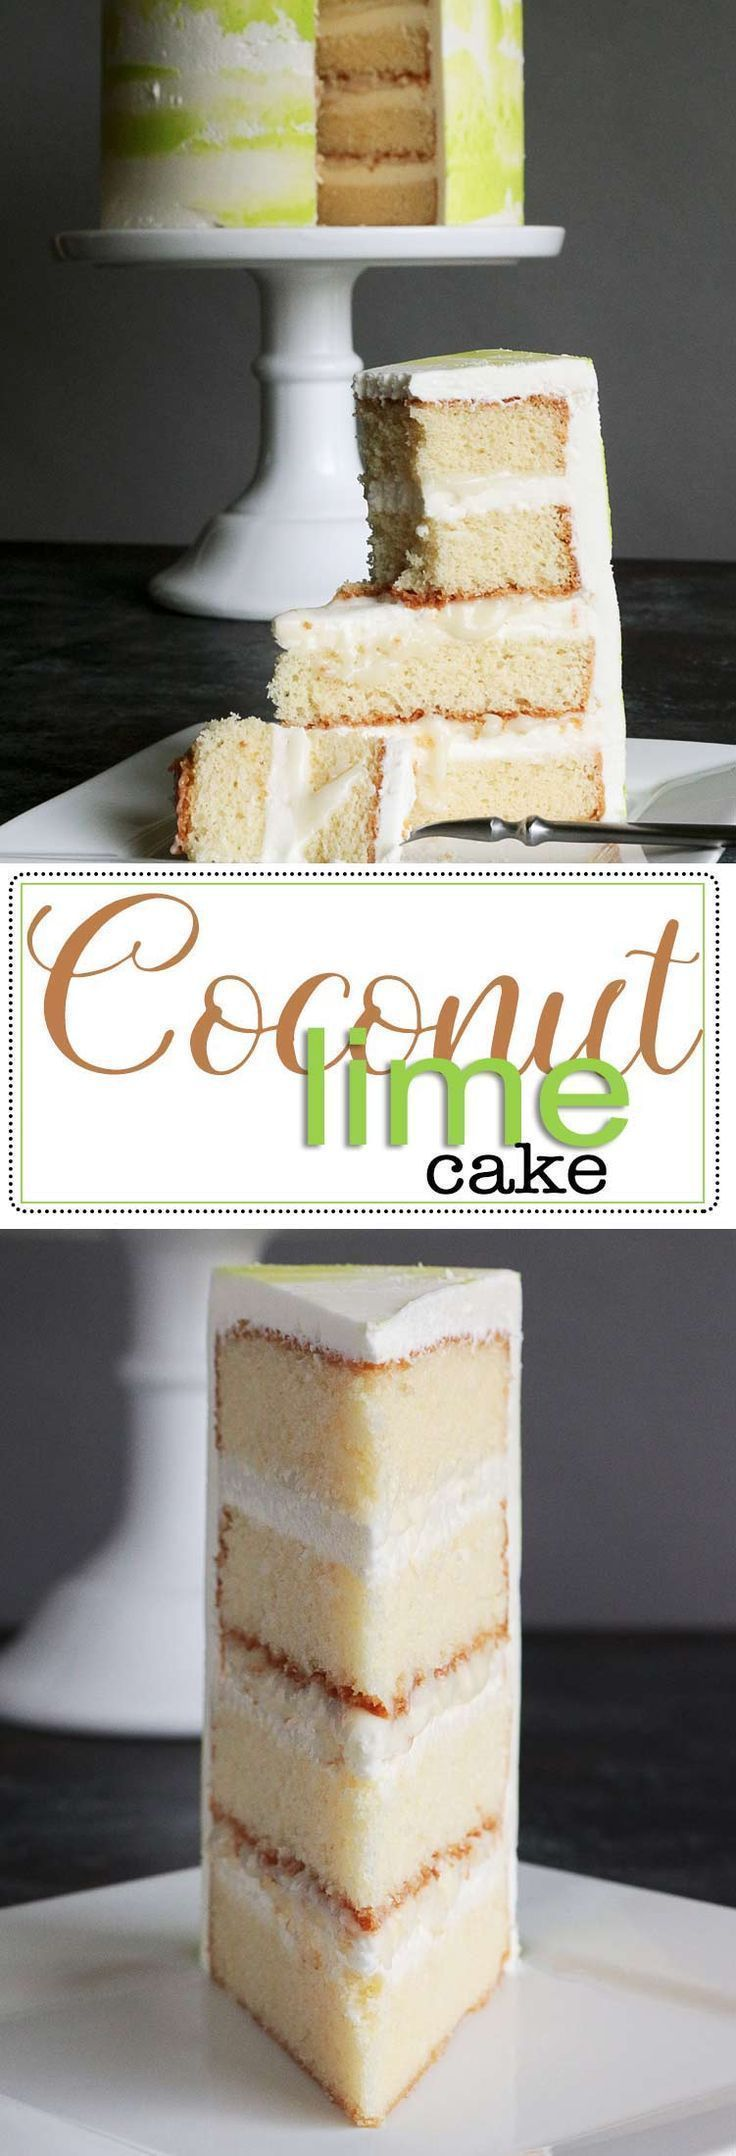 Light, Fluffy, and Tender Coconut Cake Recipe.  | Posted By: DebbieNet.com